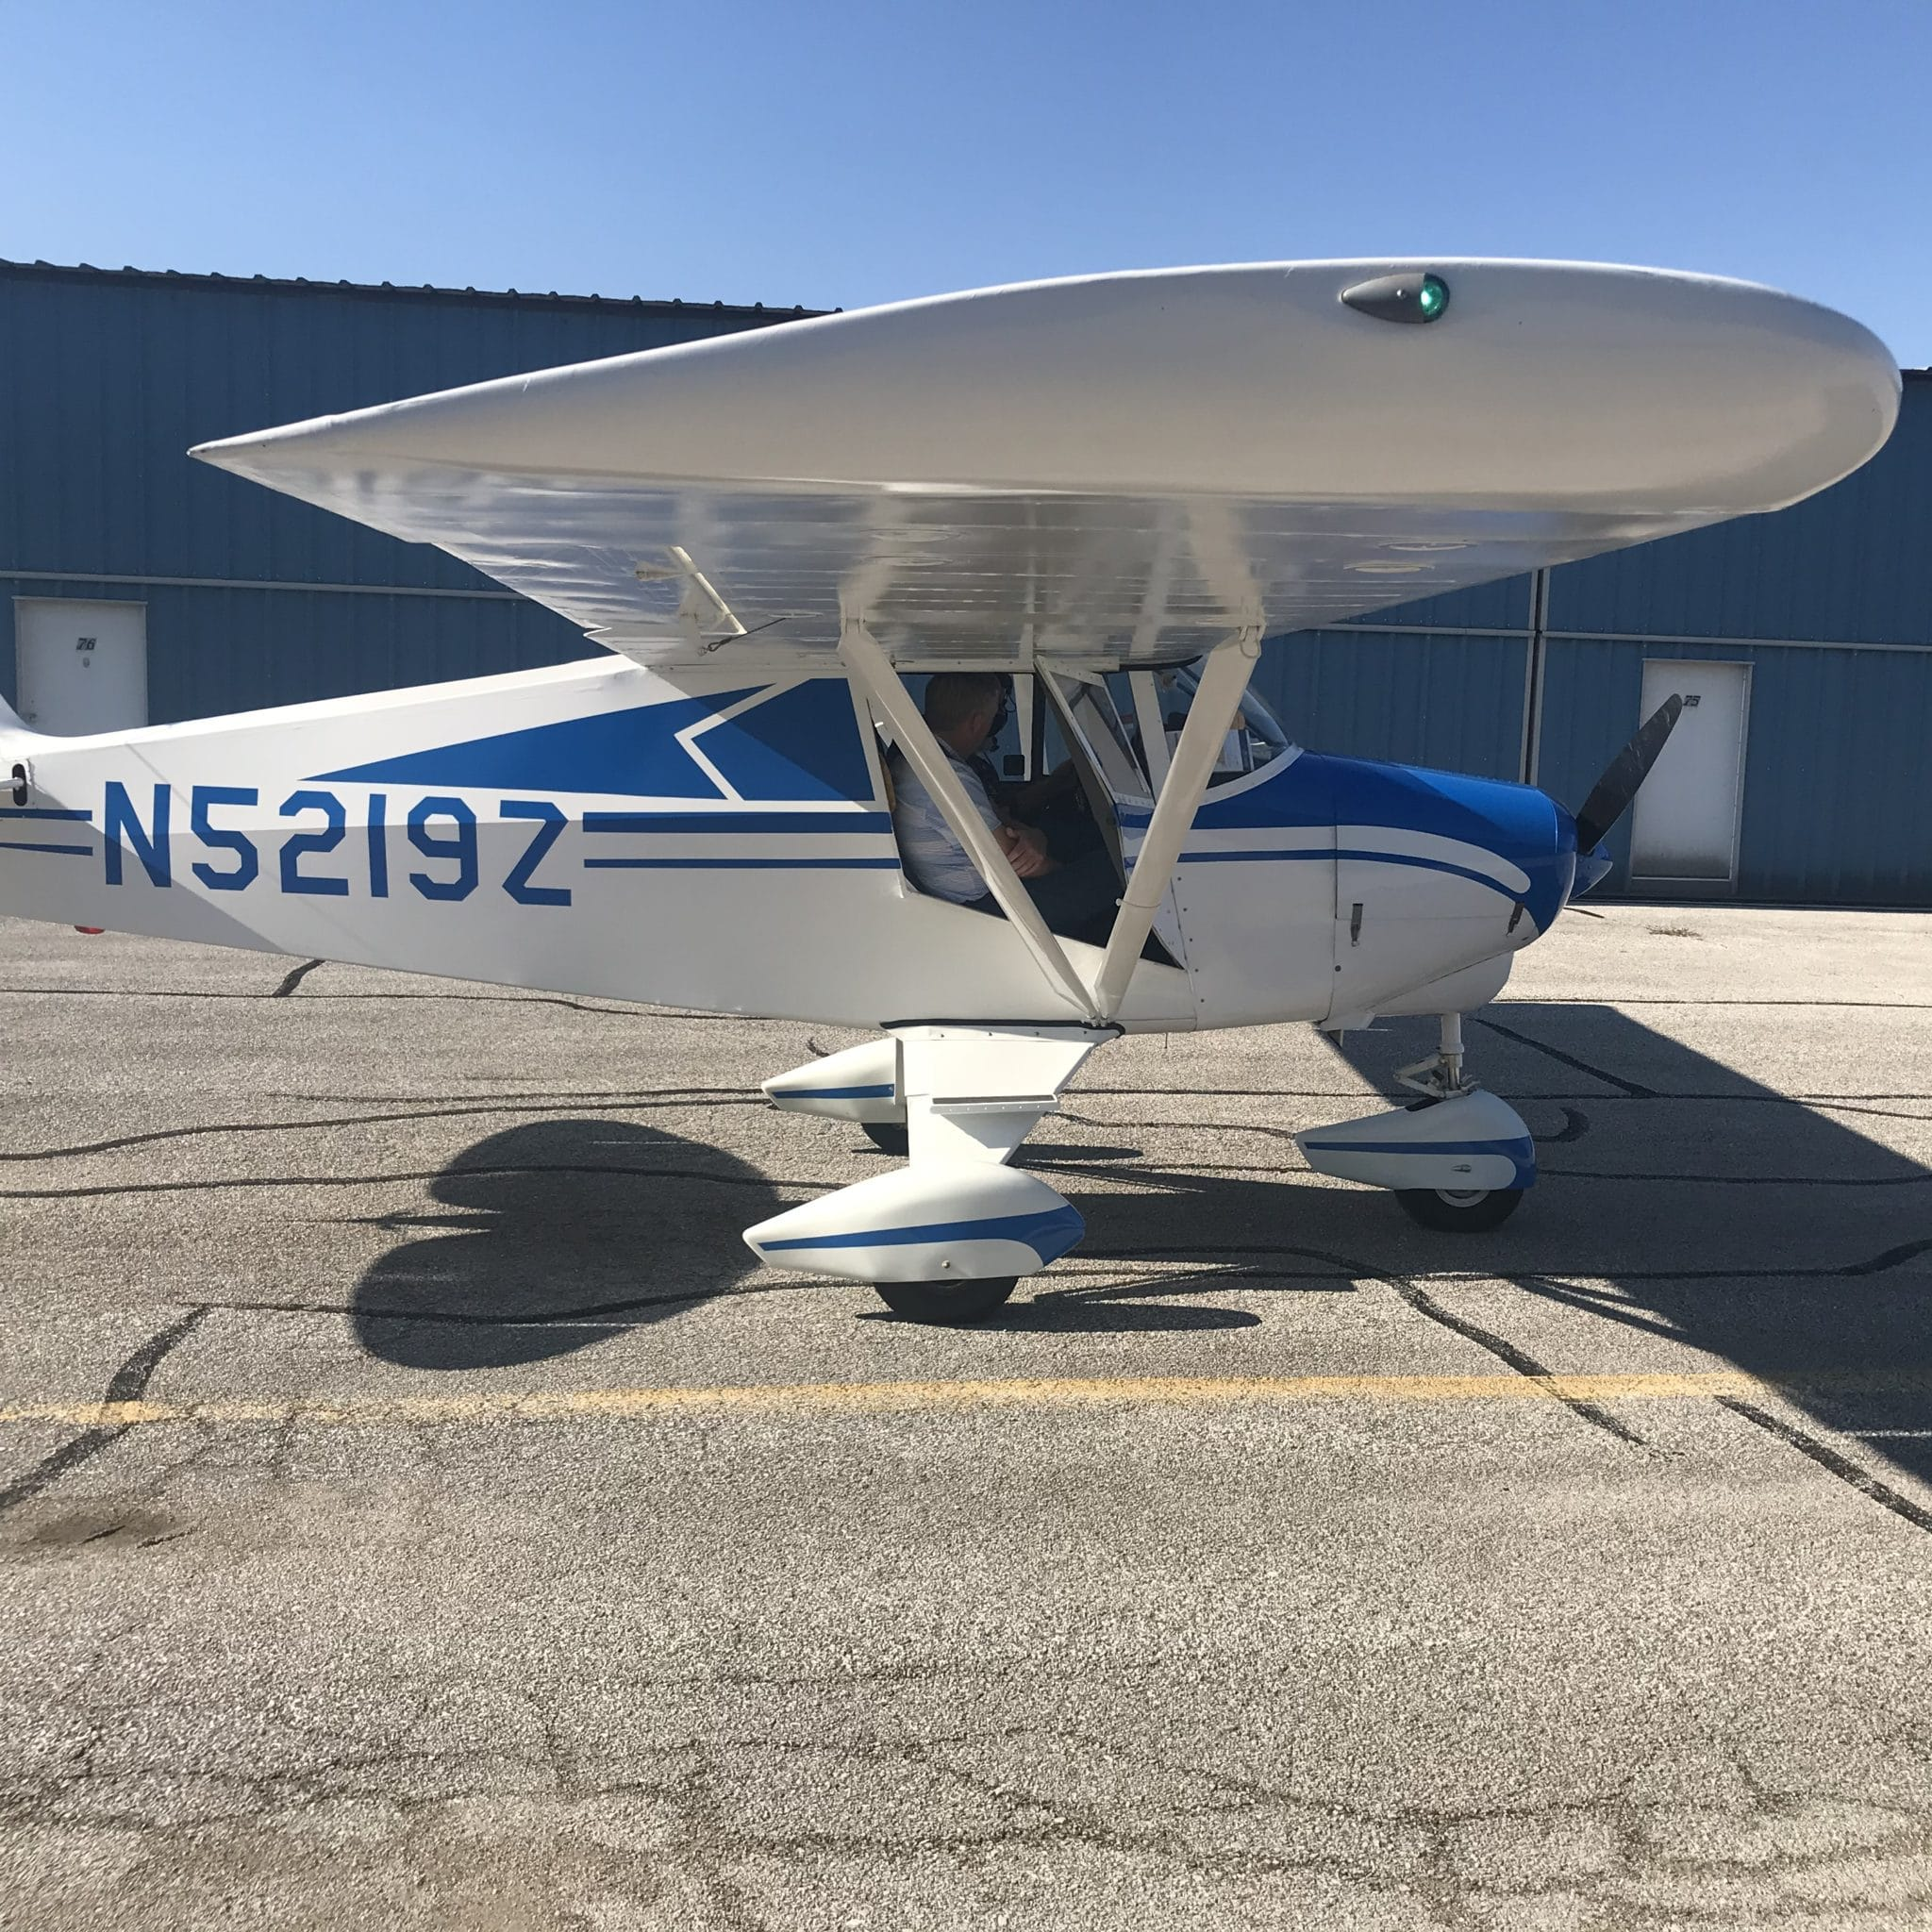 Picture of the Day: New owner's first flight